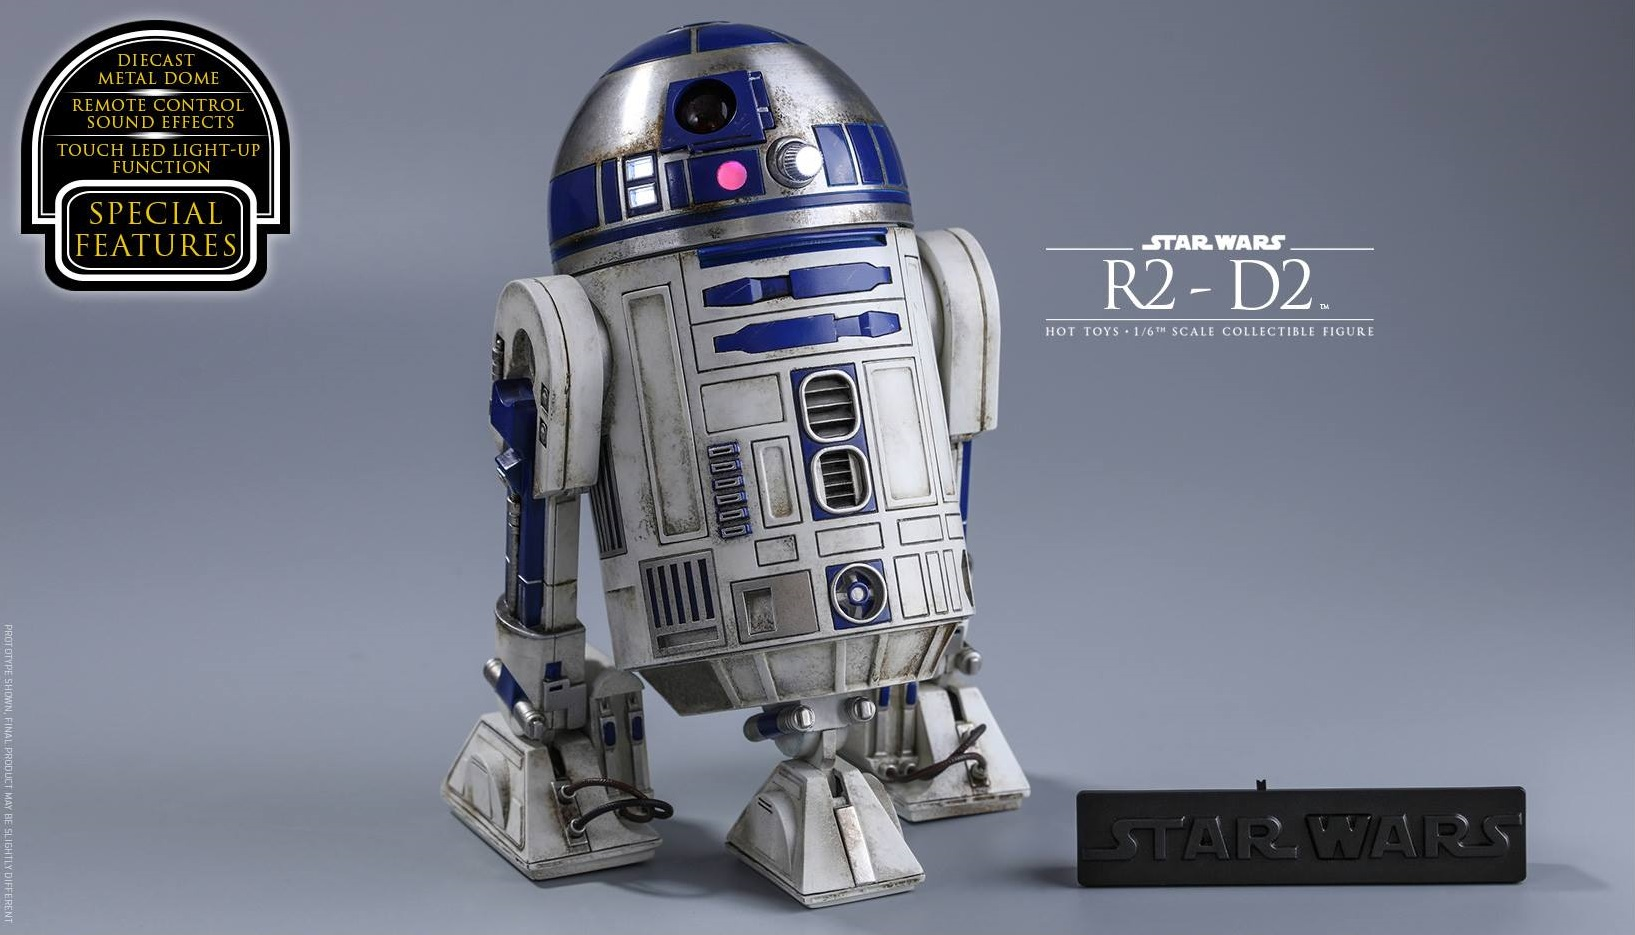 Hot Toys R2-D2 Sixth Scale Figur zu The Force Awakens